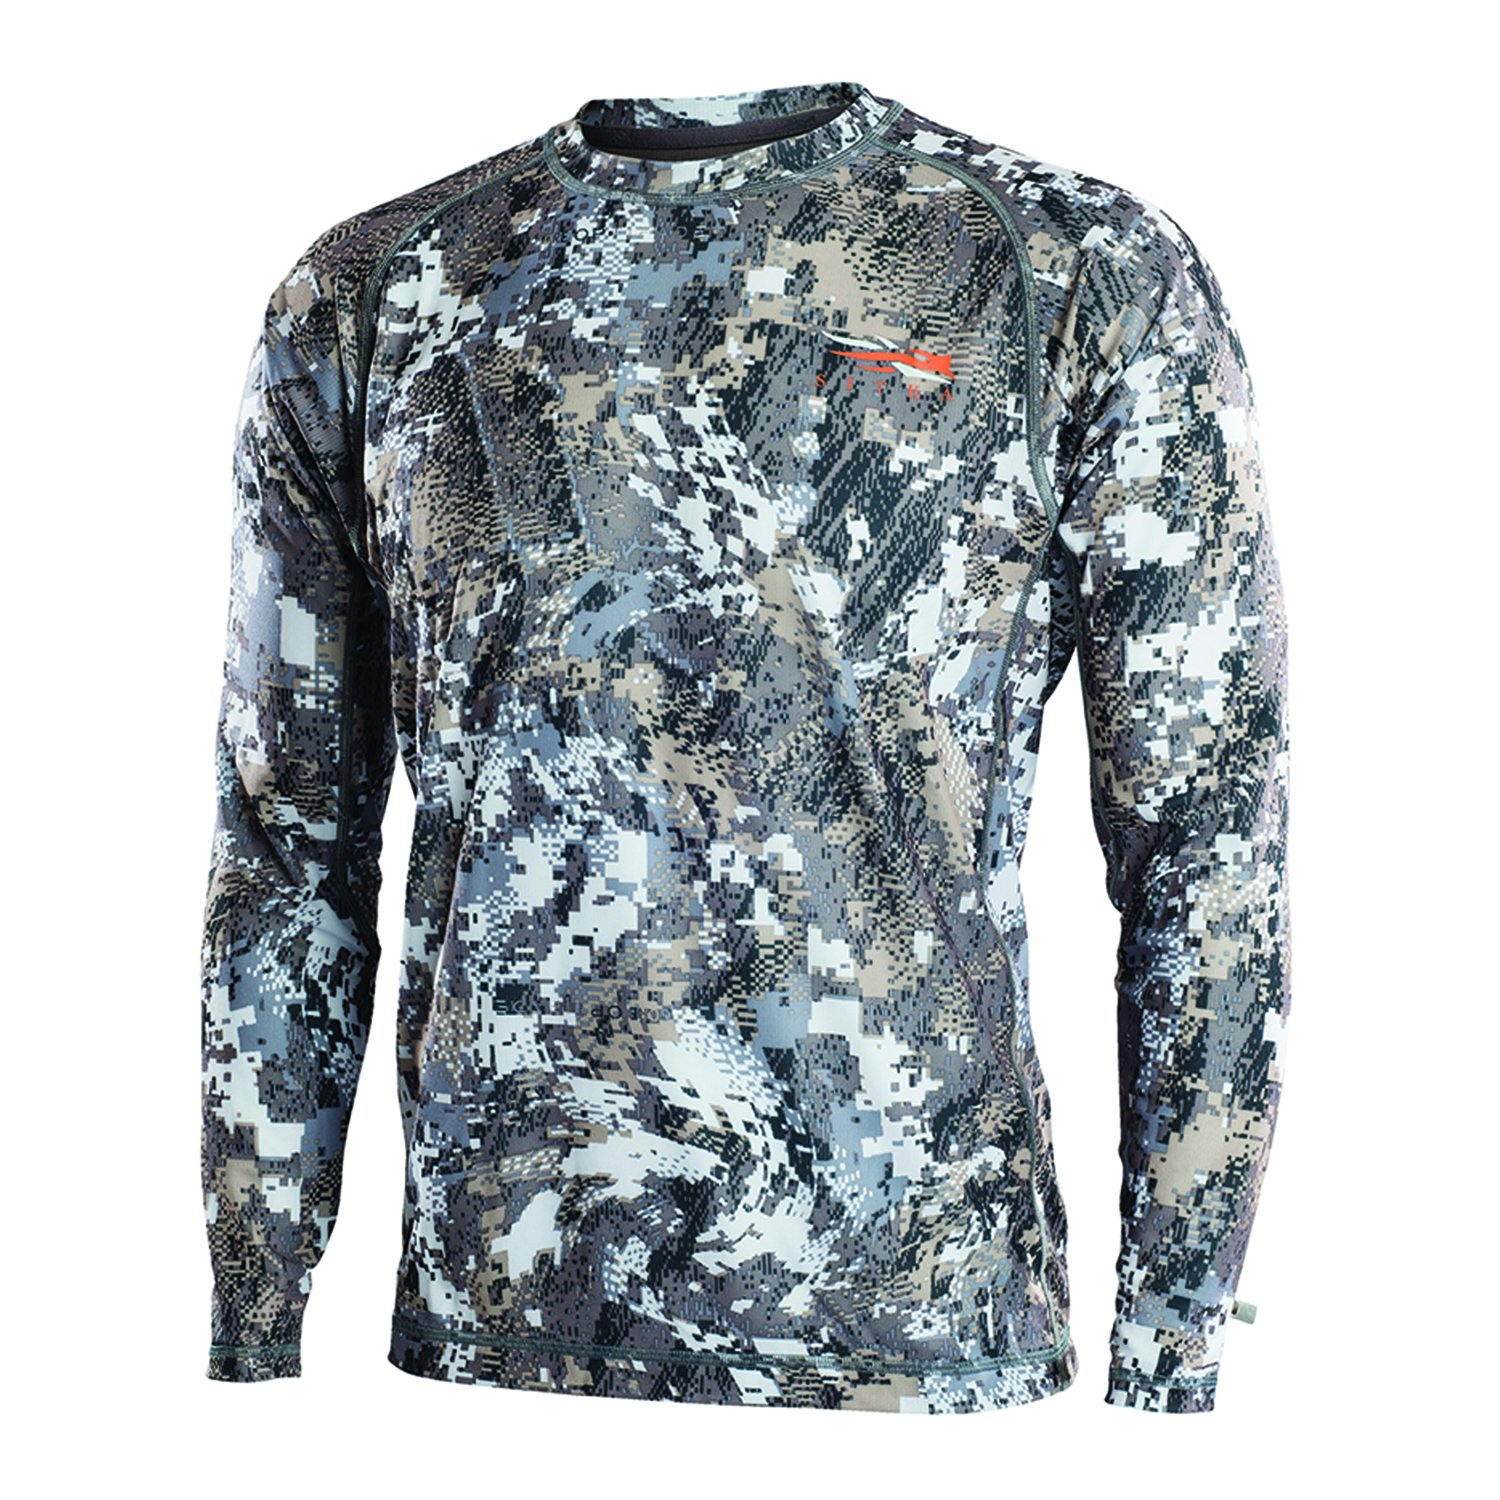 SITKA Gear Core Light Weight Crew - Long Sleeve Optifade Elevated II Medium Tall by SITKA (Image #1)